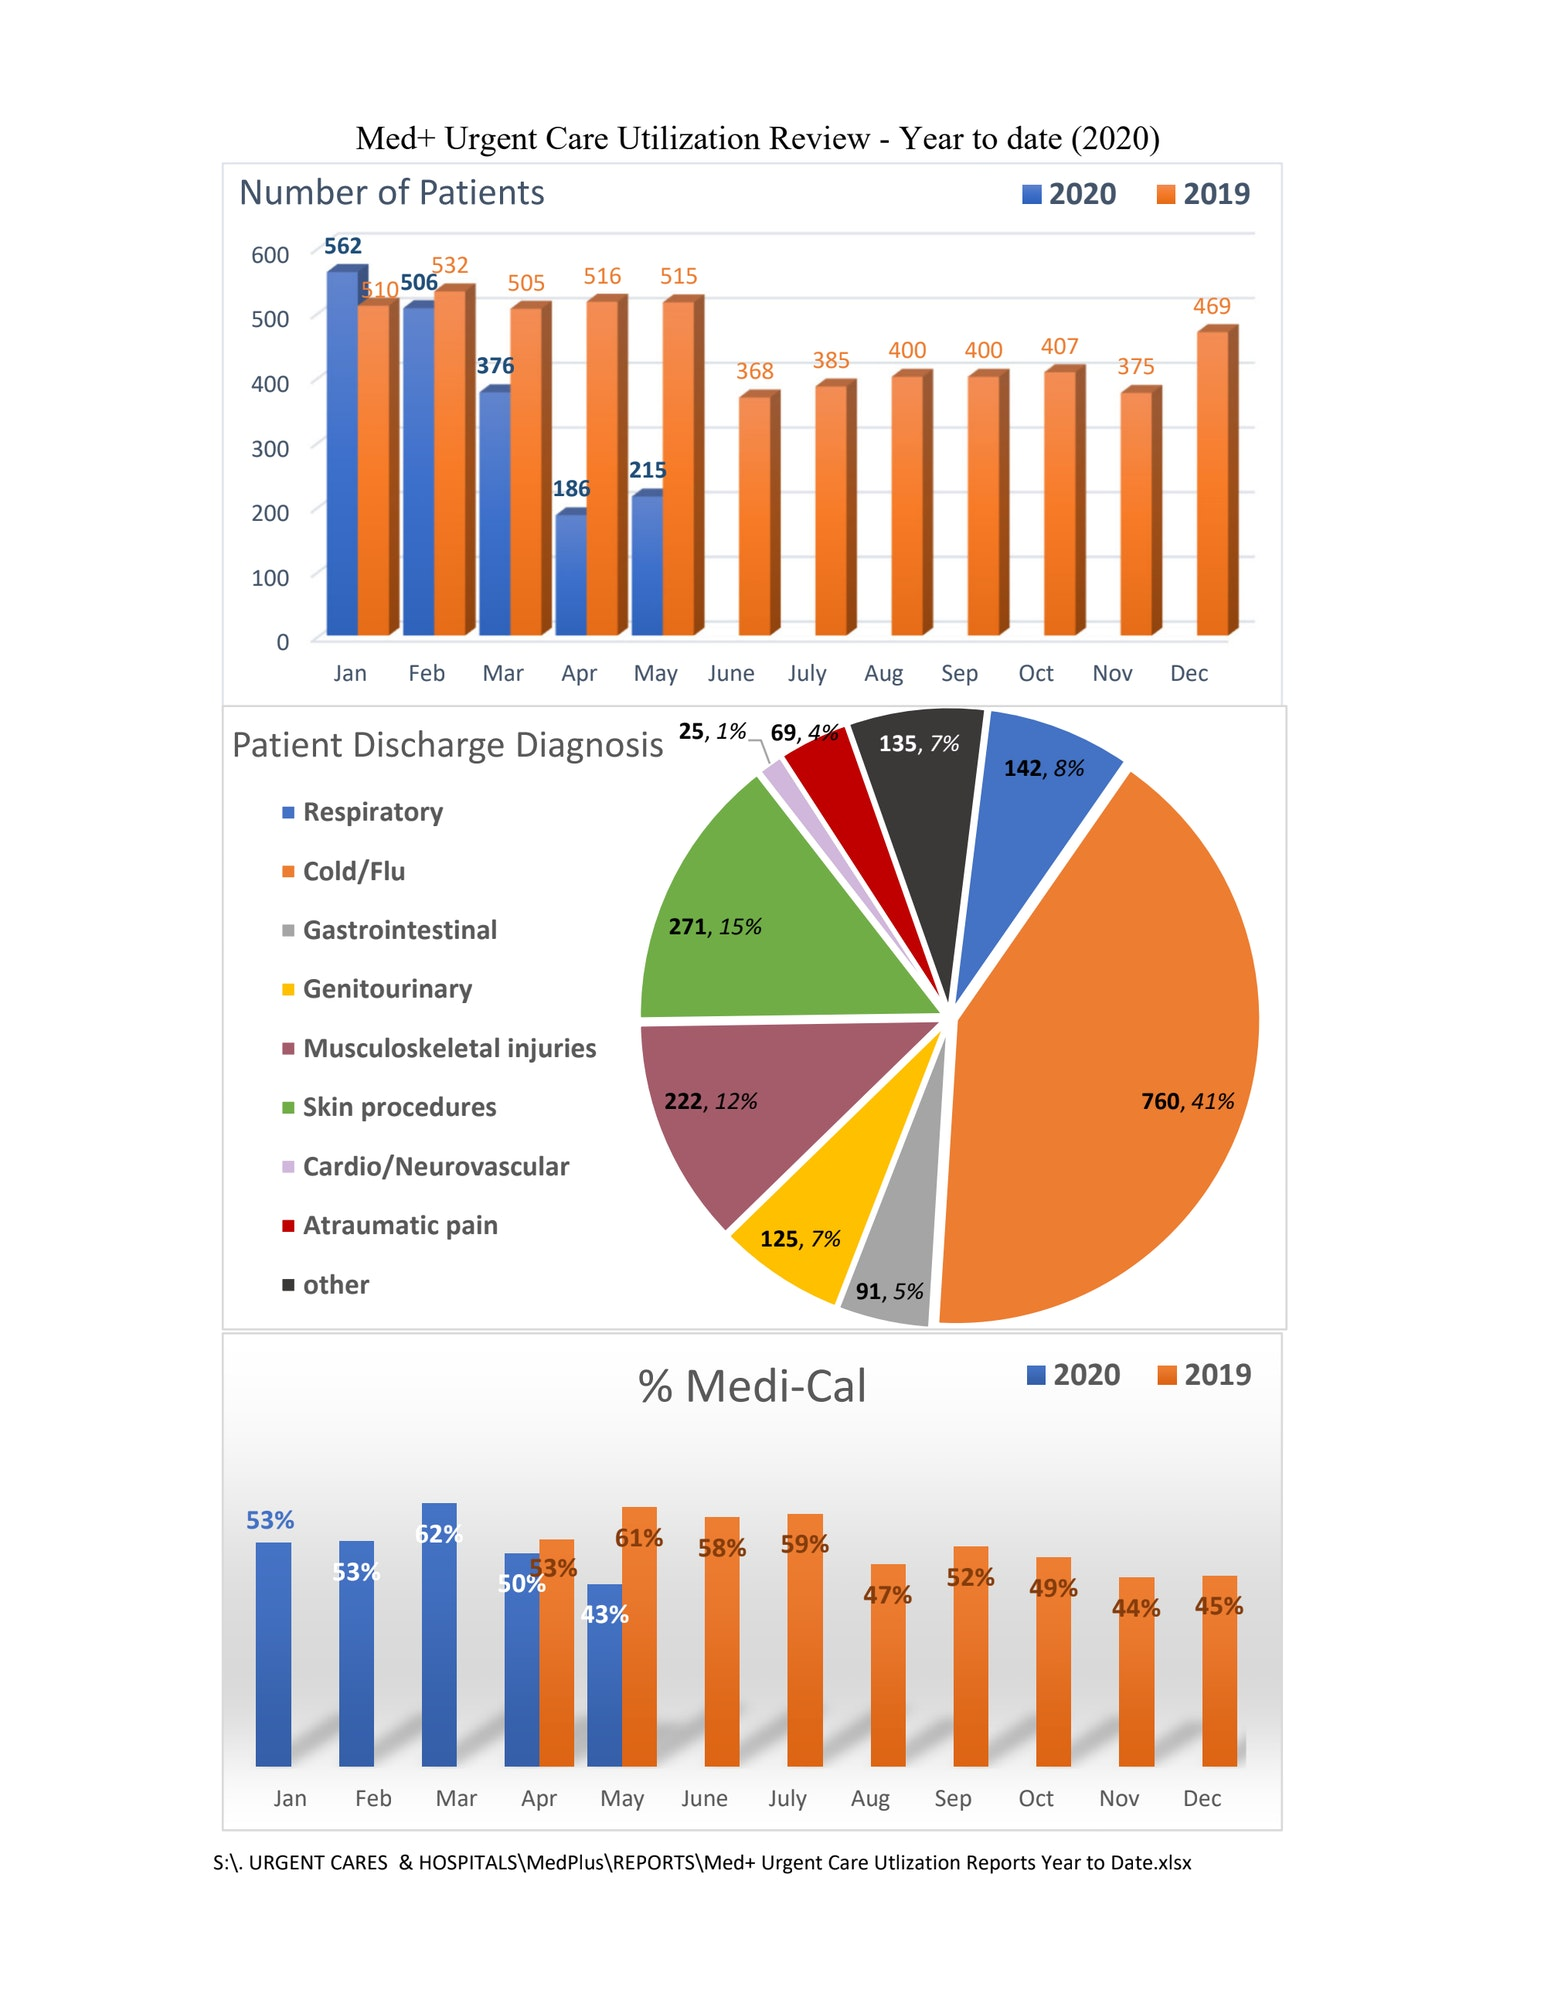 Graphs of patients seen year to date 2020 vs. 2019: pie chart of discharge diagnosis and bar graph of patients seen using Medi-Cal by month in 2019 and 2020.